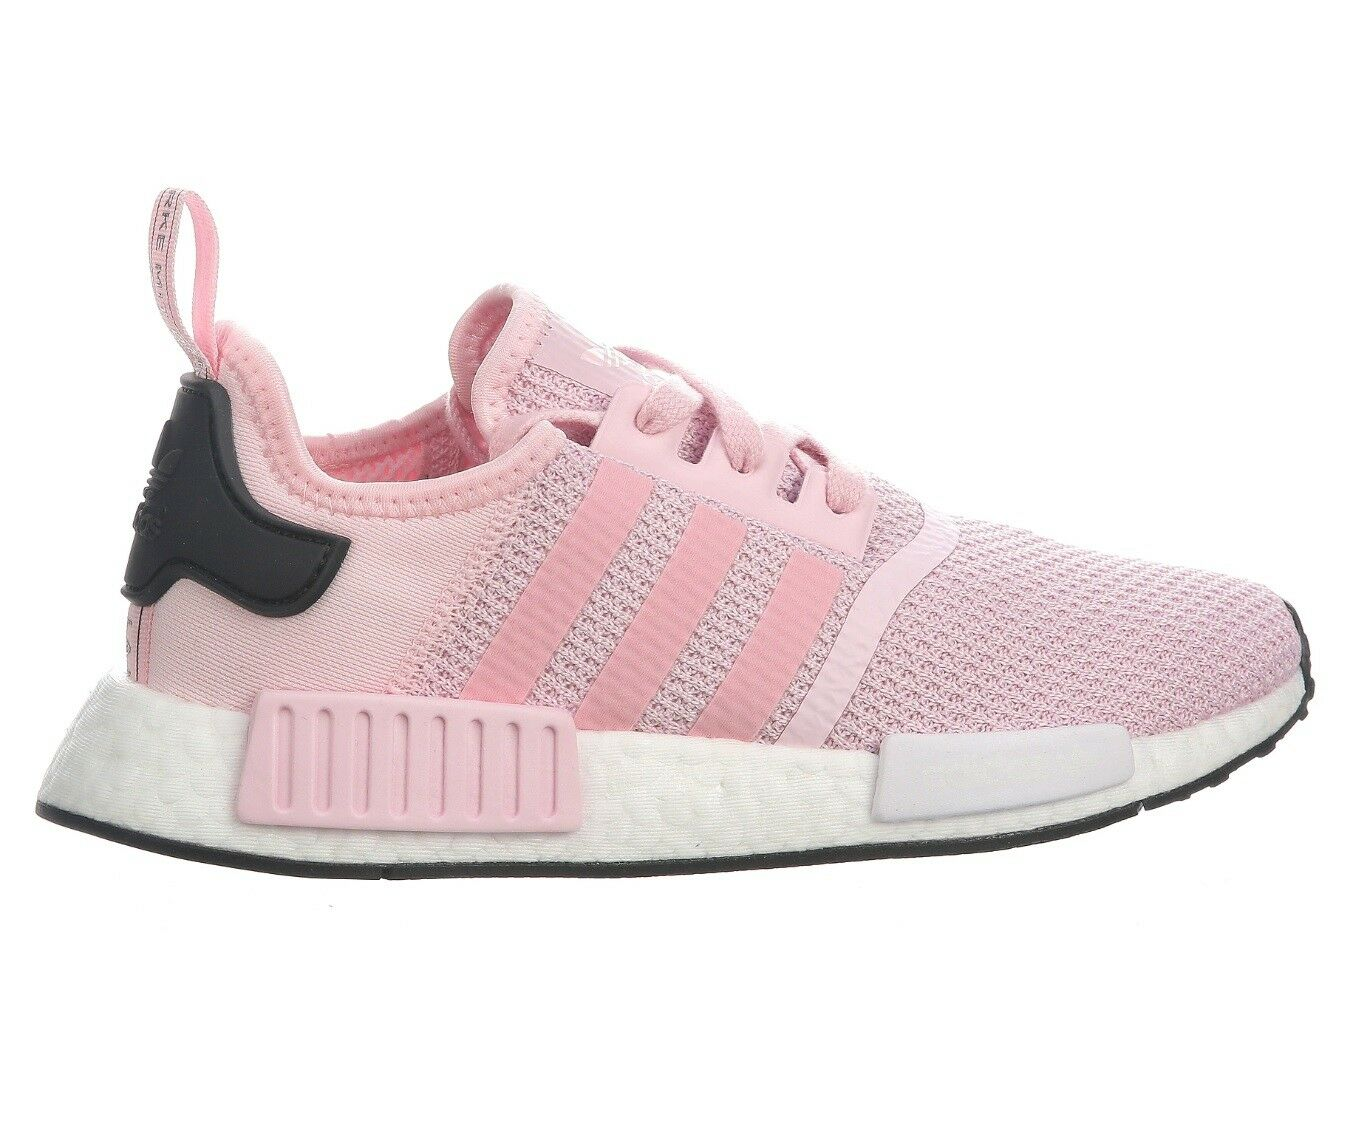 Adidas NMD R1 Roller Knit Womens B37648 Clear Pink Boost Running shoes Size 6